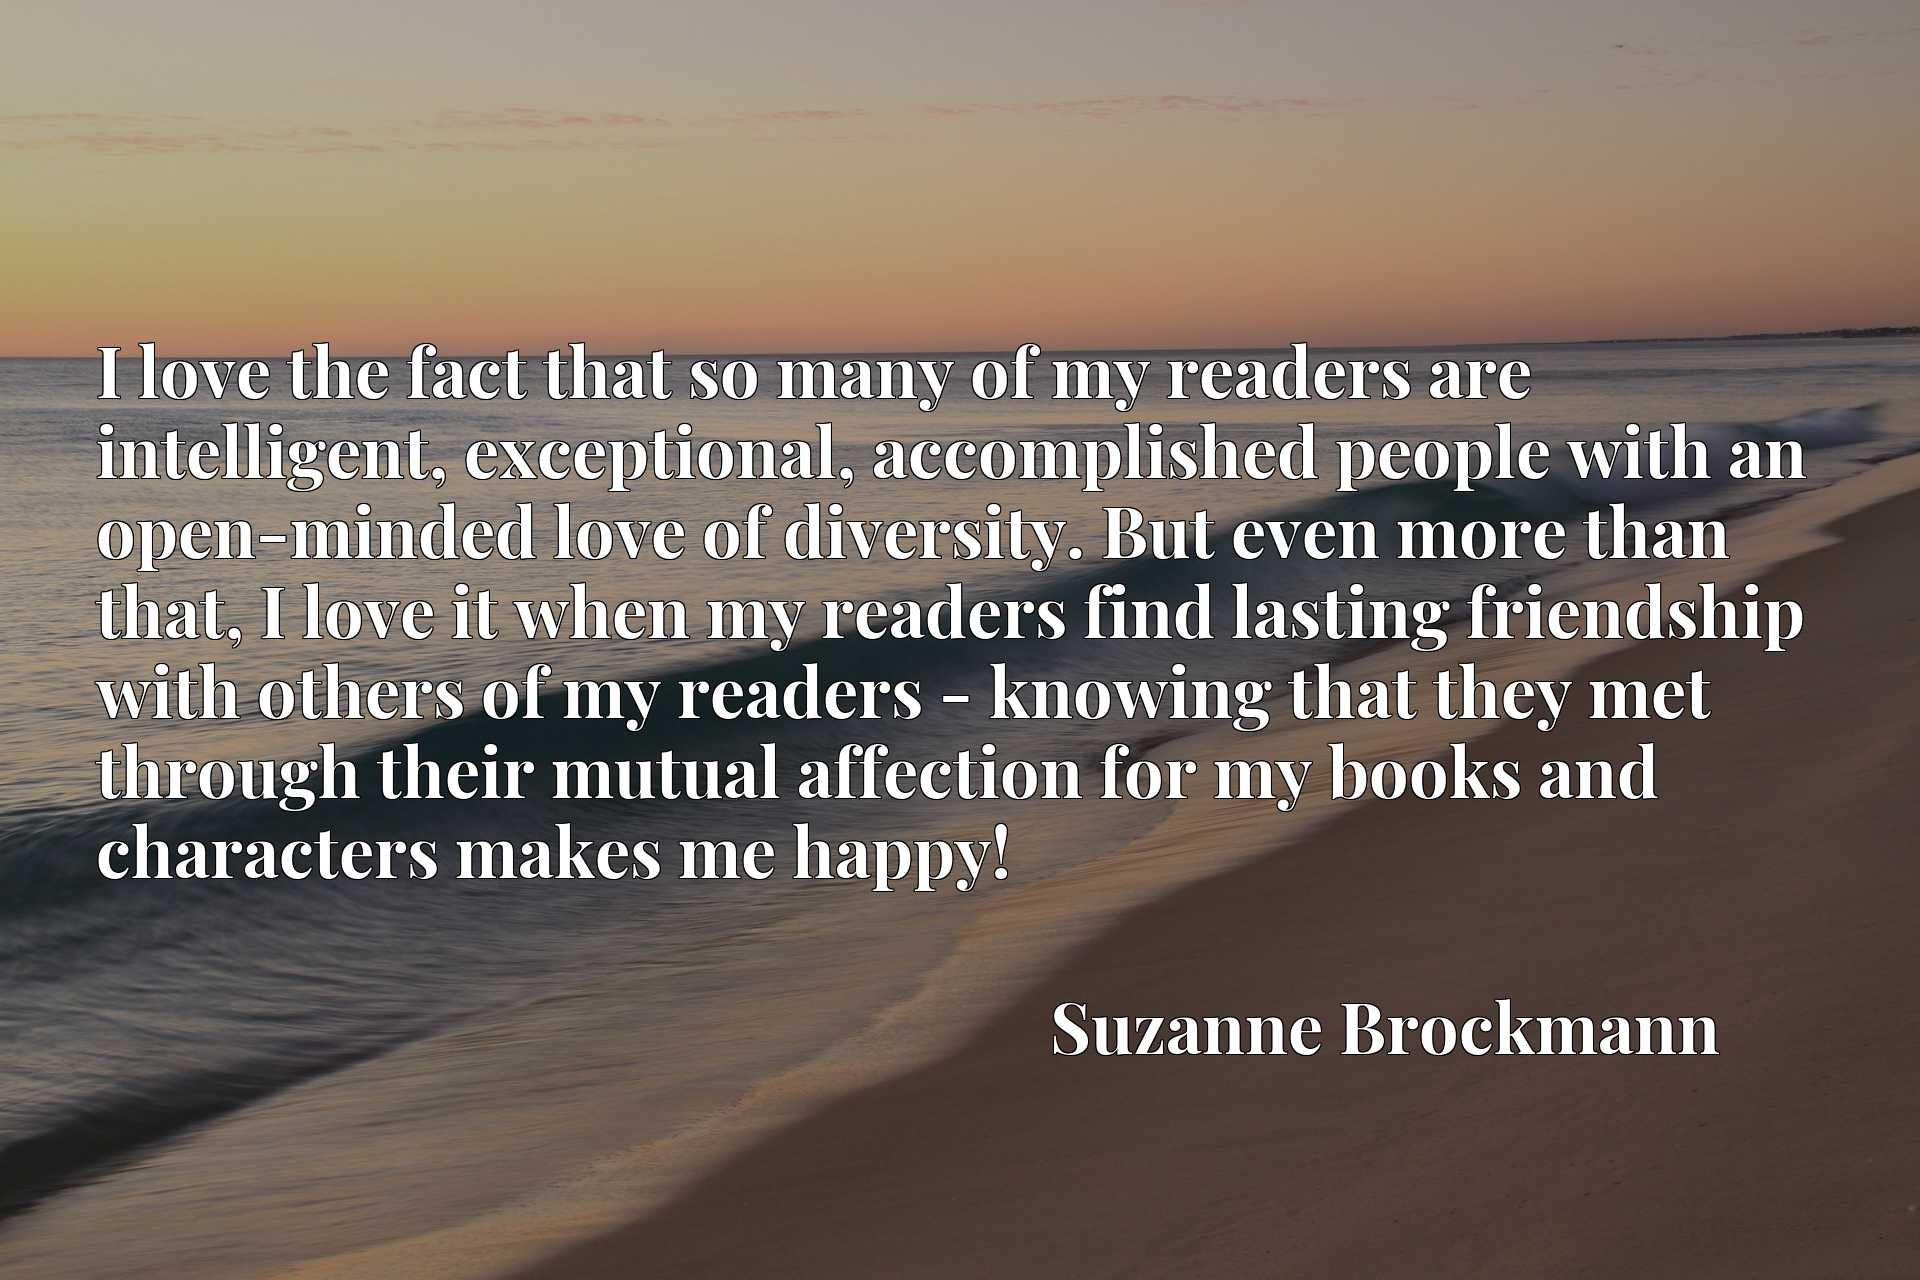 I love the fact that so many of my readers are intelligent, exceptional, accomplished people with an open-minded love of diversity. But even more than that, I love it when my readers find lasting friendship with others of my readers - knowing that they met through their mutual affection for my books and characters makes me happy!